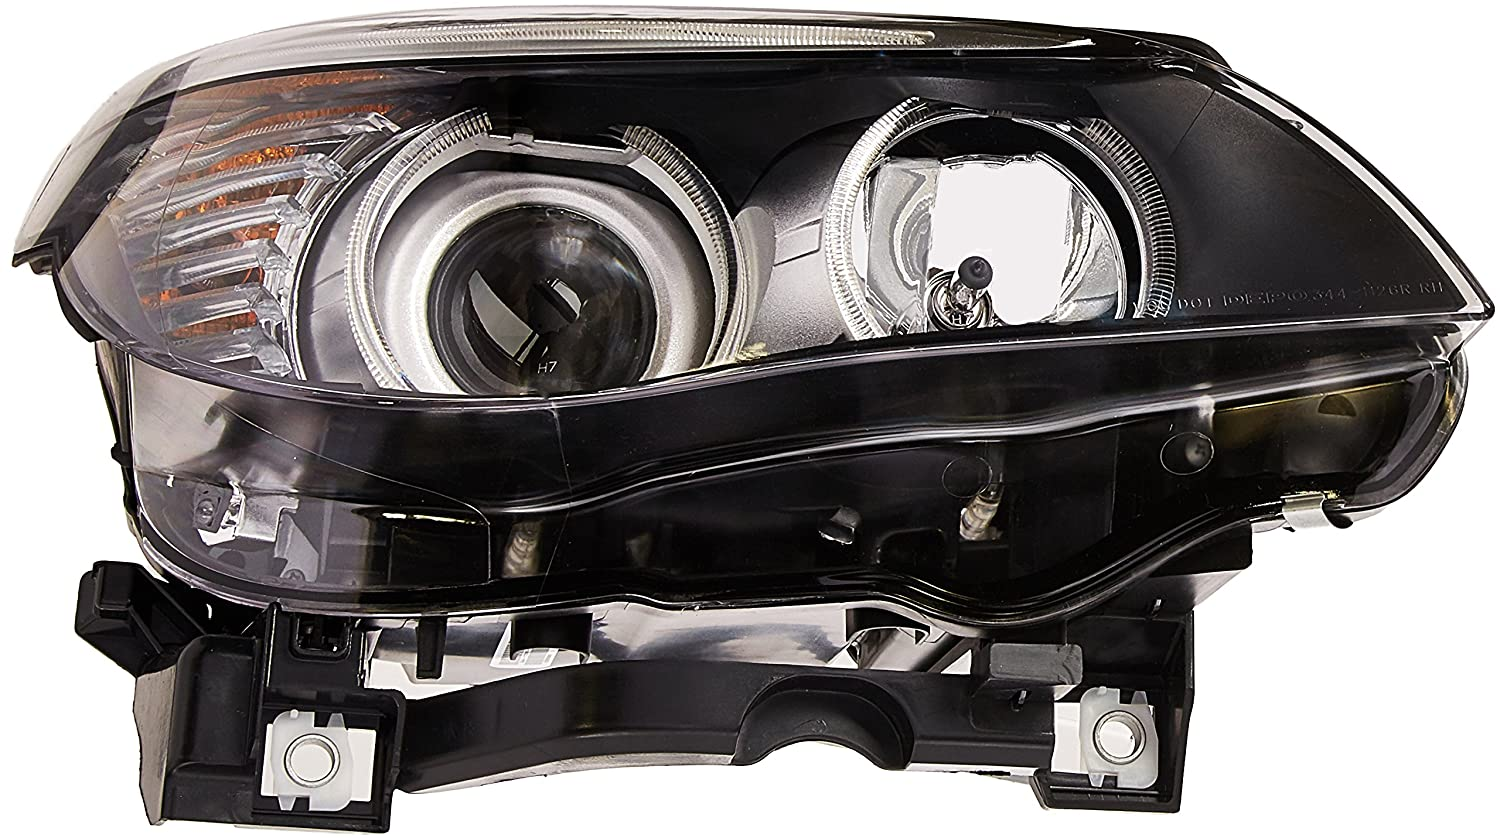 Depo 344-1126L-AS2 Headlight Assembly BMW 5 SERIES 08-10 ASSEMBLY HALOGEN DRIVER SIDE